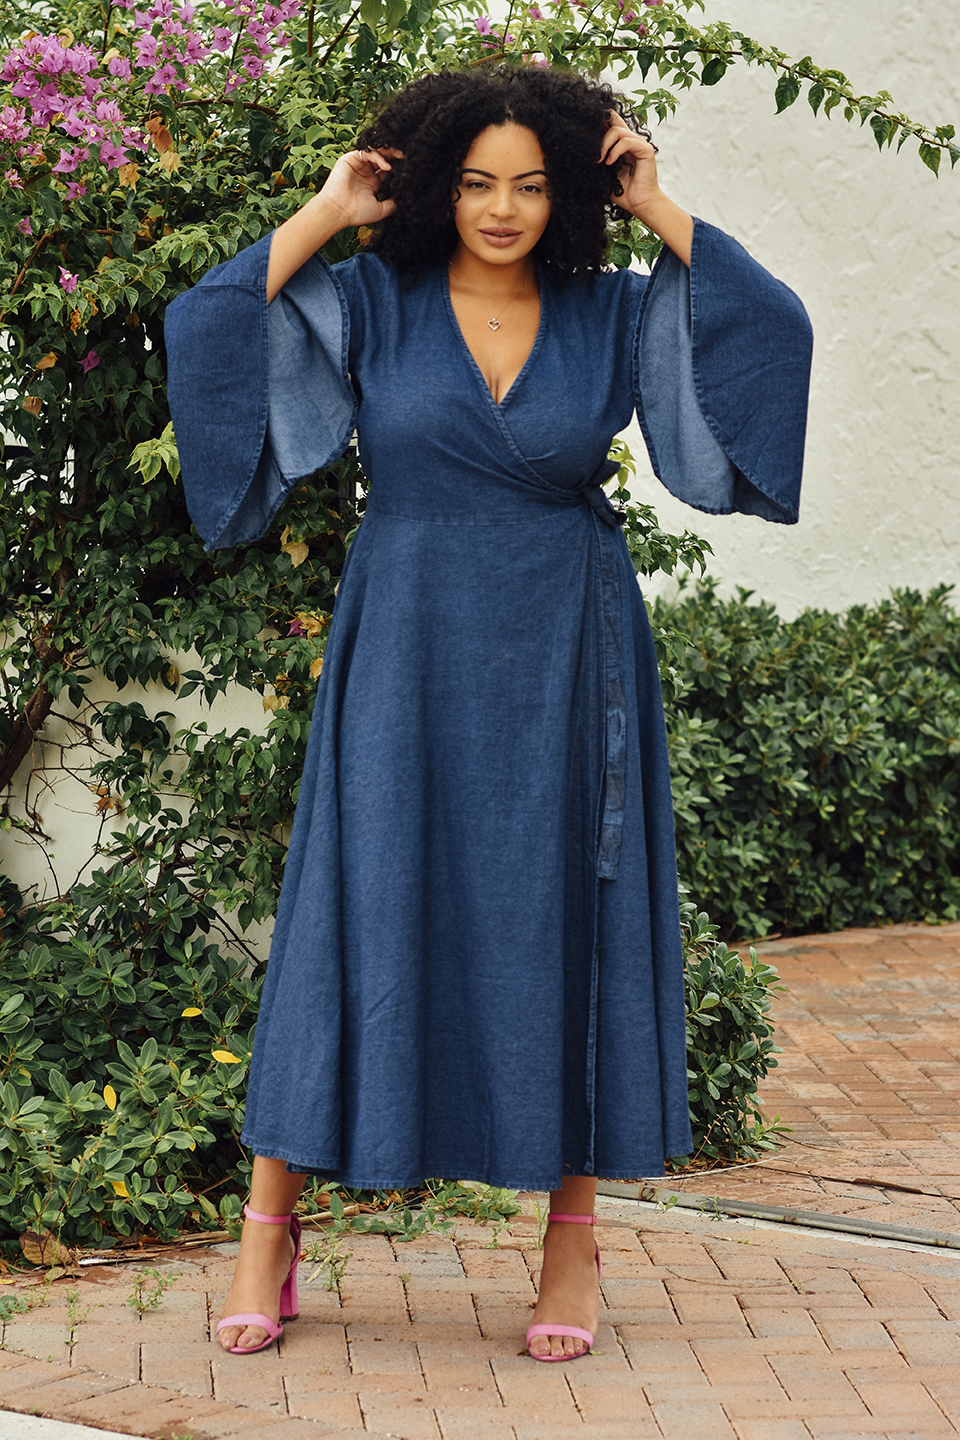 Plus-Size Lifestyle & Travel Blogger wearing Bombshell Boutique Dress in West Palm Beach, Florida